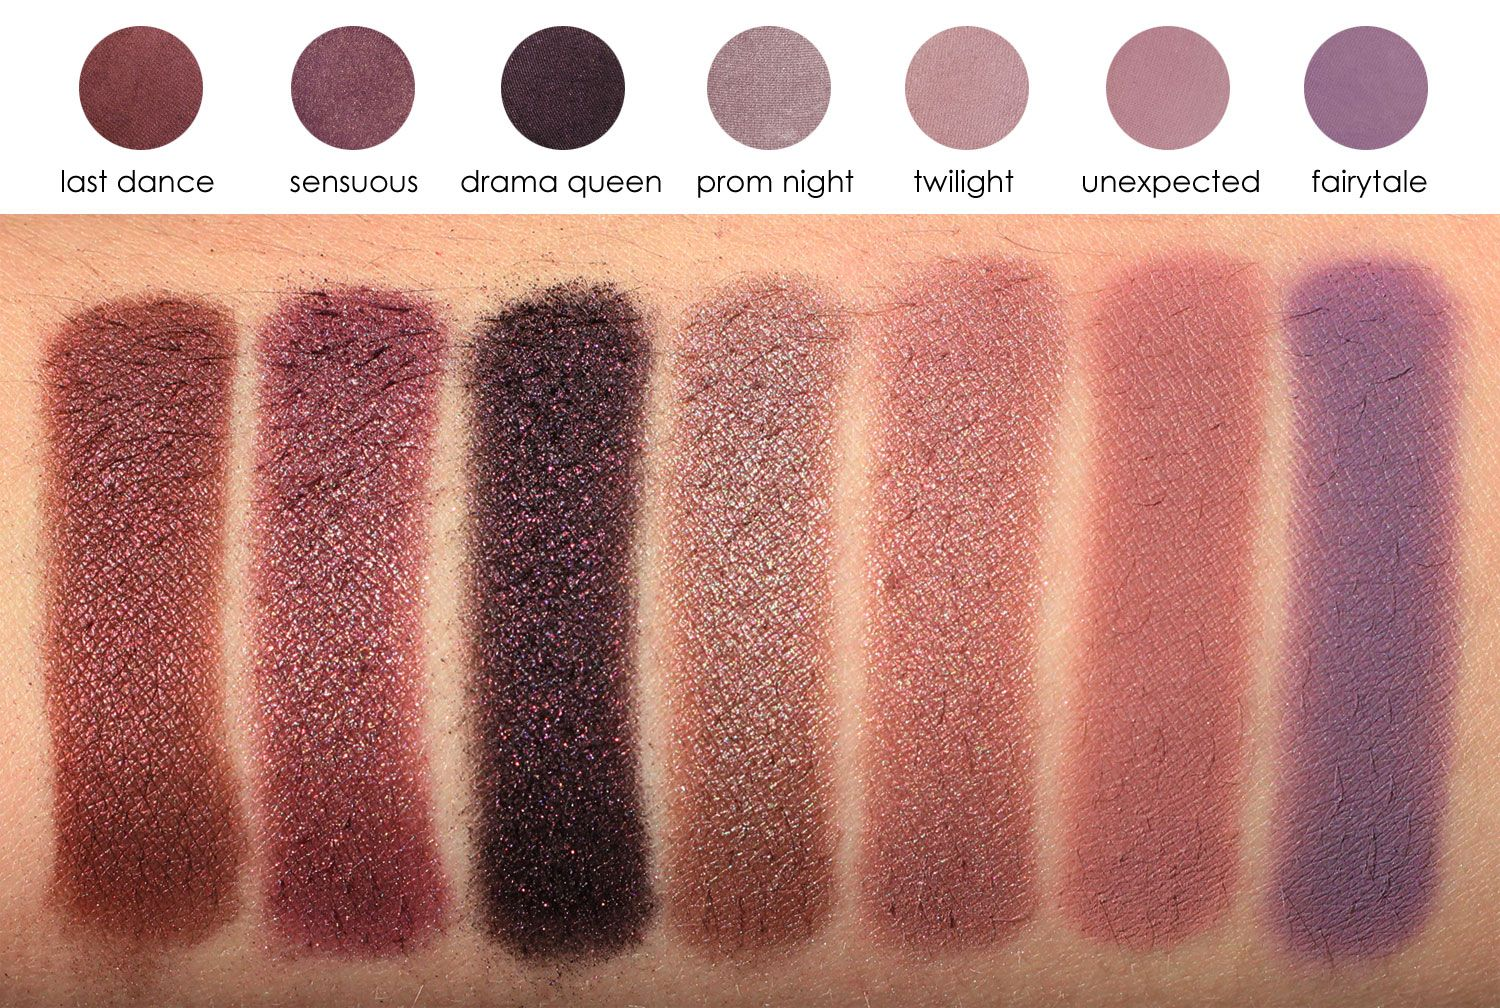 Six New Makeup Geek Eyeshadow Colors Makeup Geek Makeup Geek Eyeshadow Makeup Geek Colorful Eyeshadow